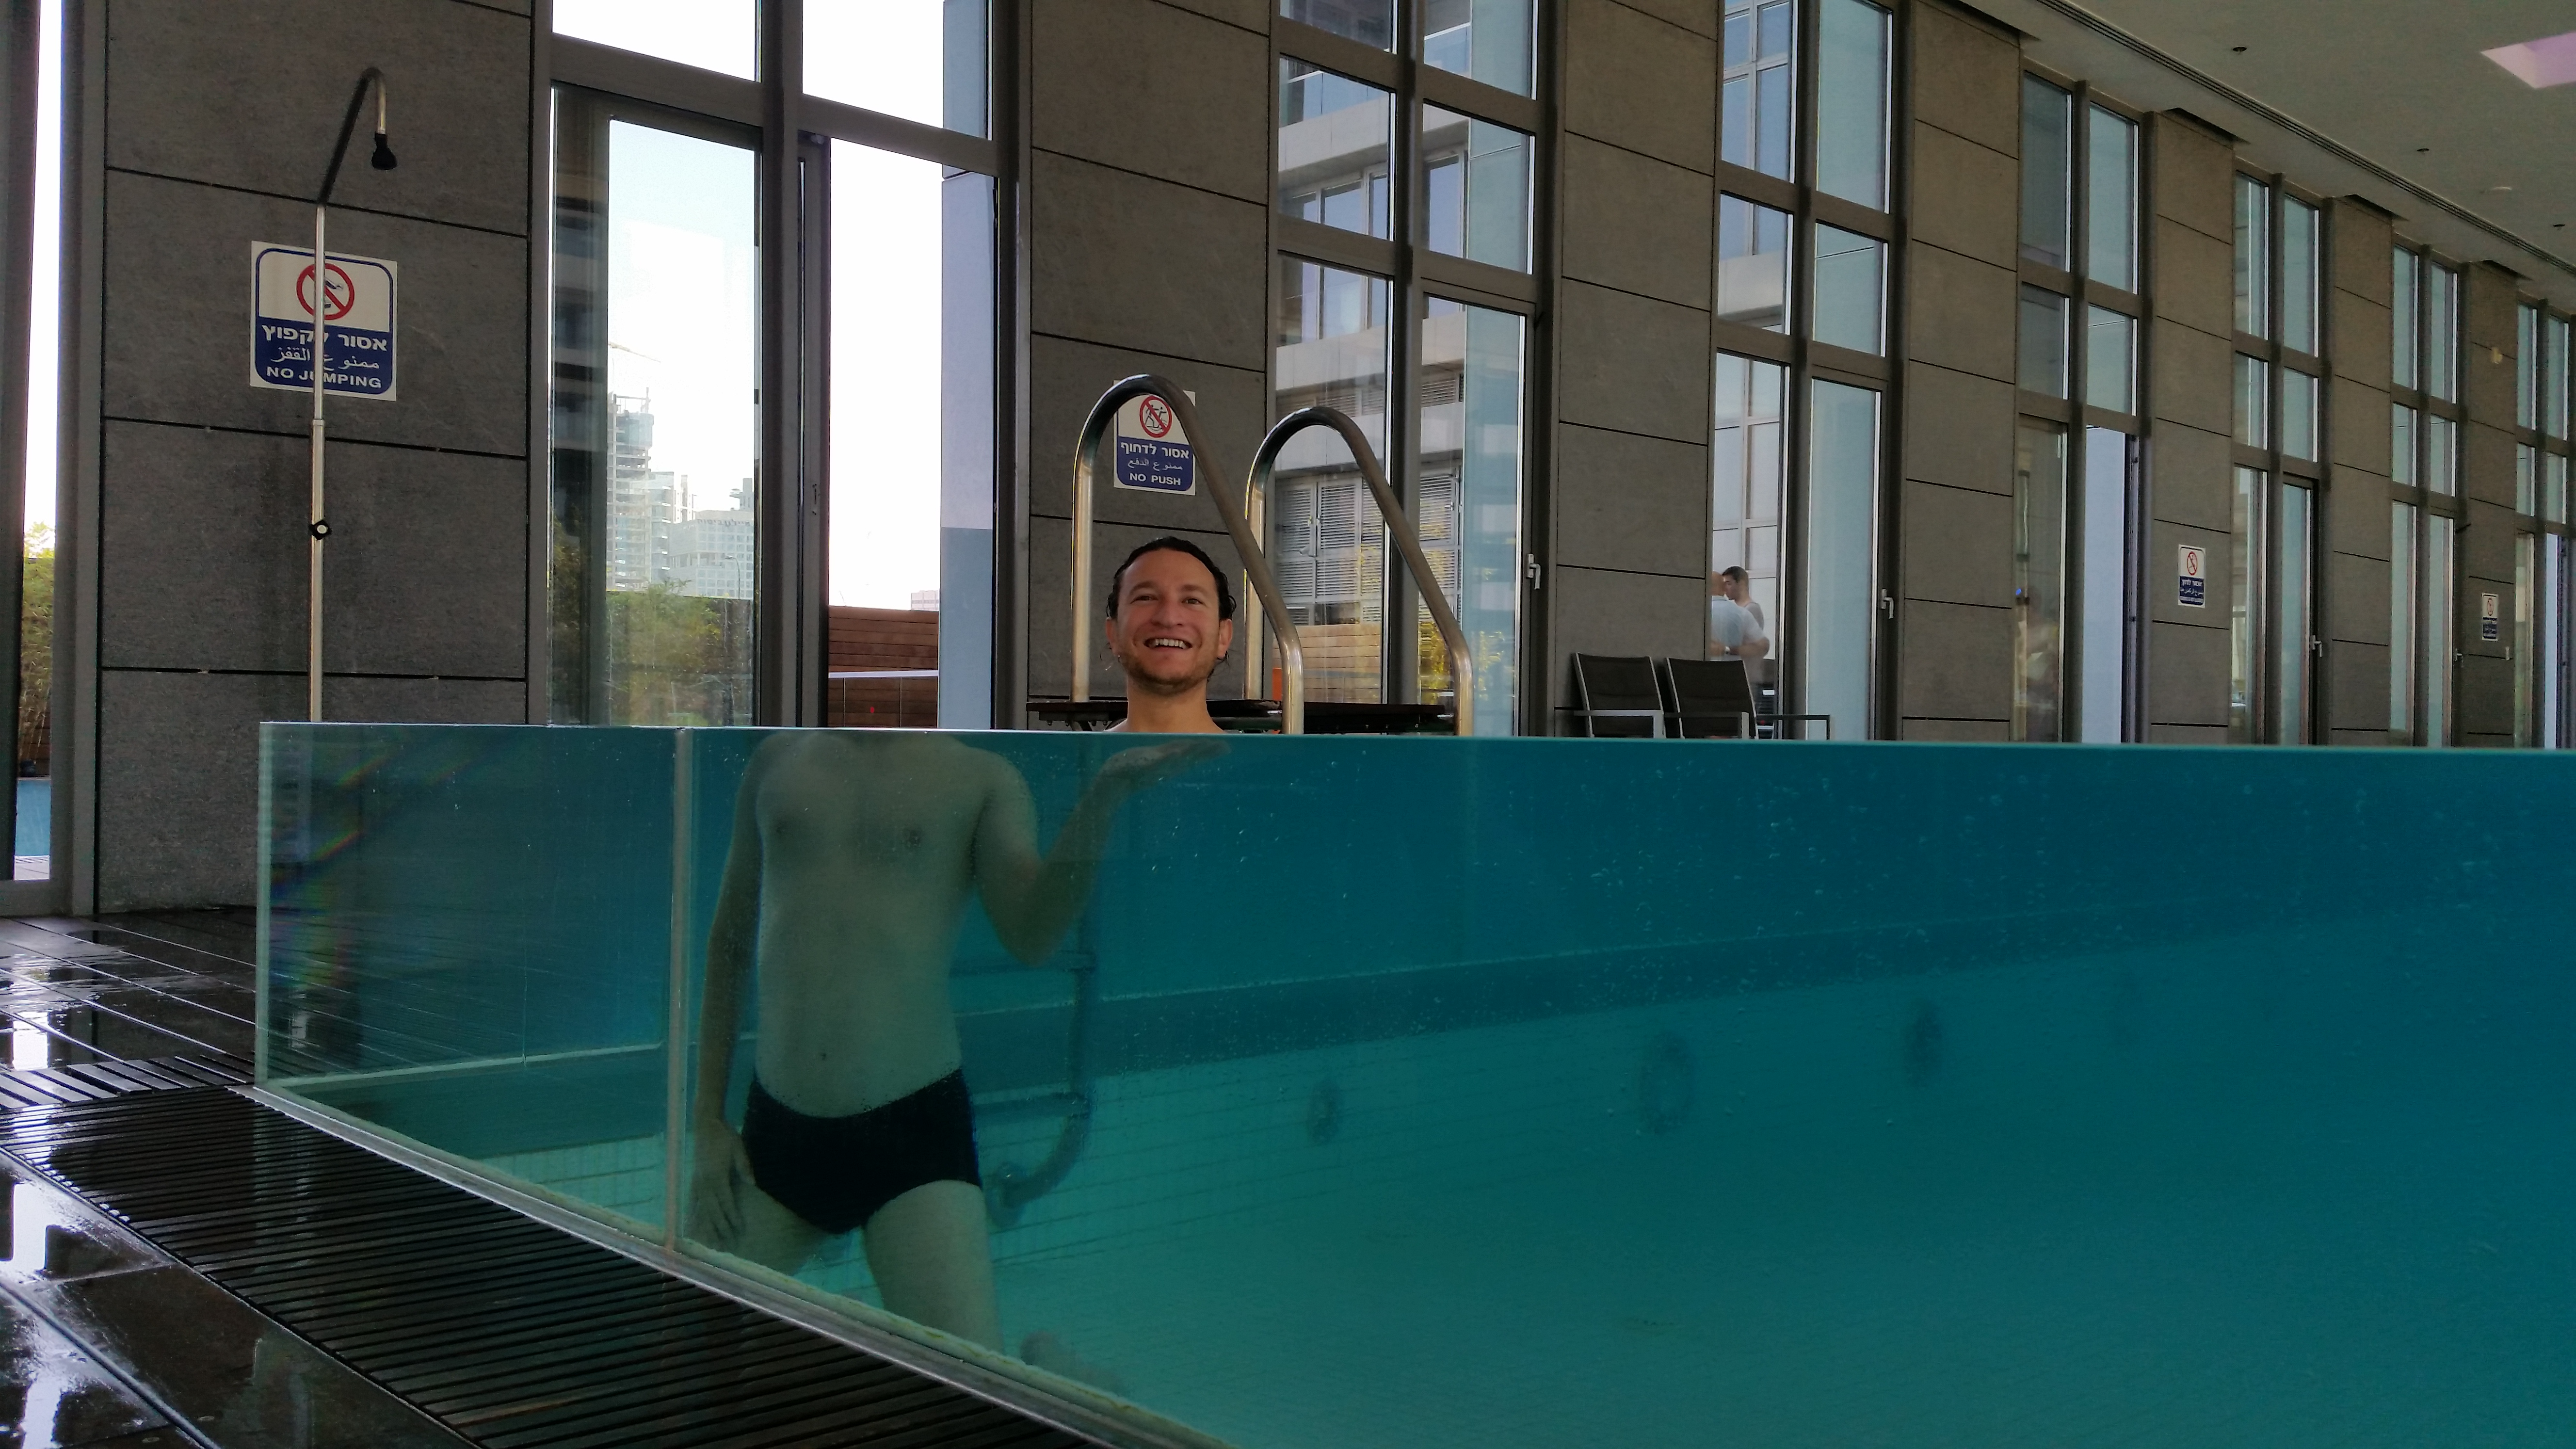 File:Refraction of light in a swimming pool with glass walls.jpg ...